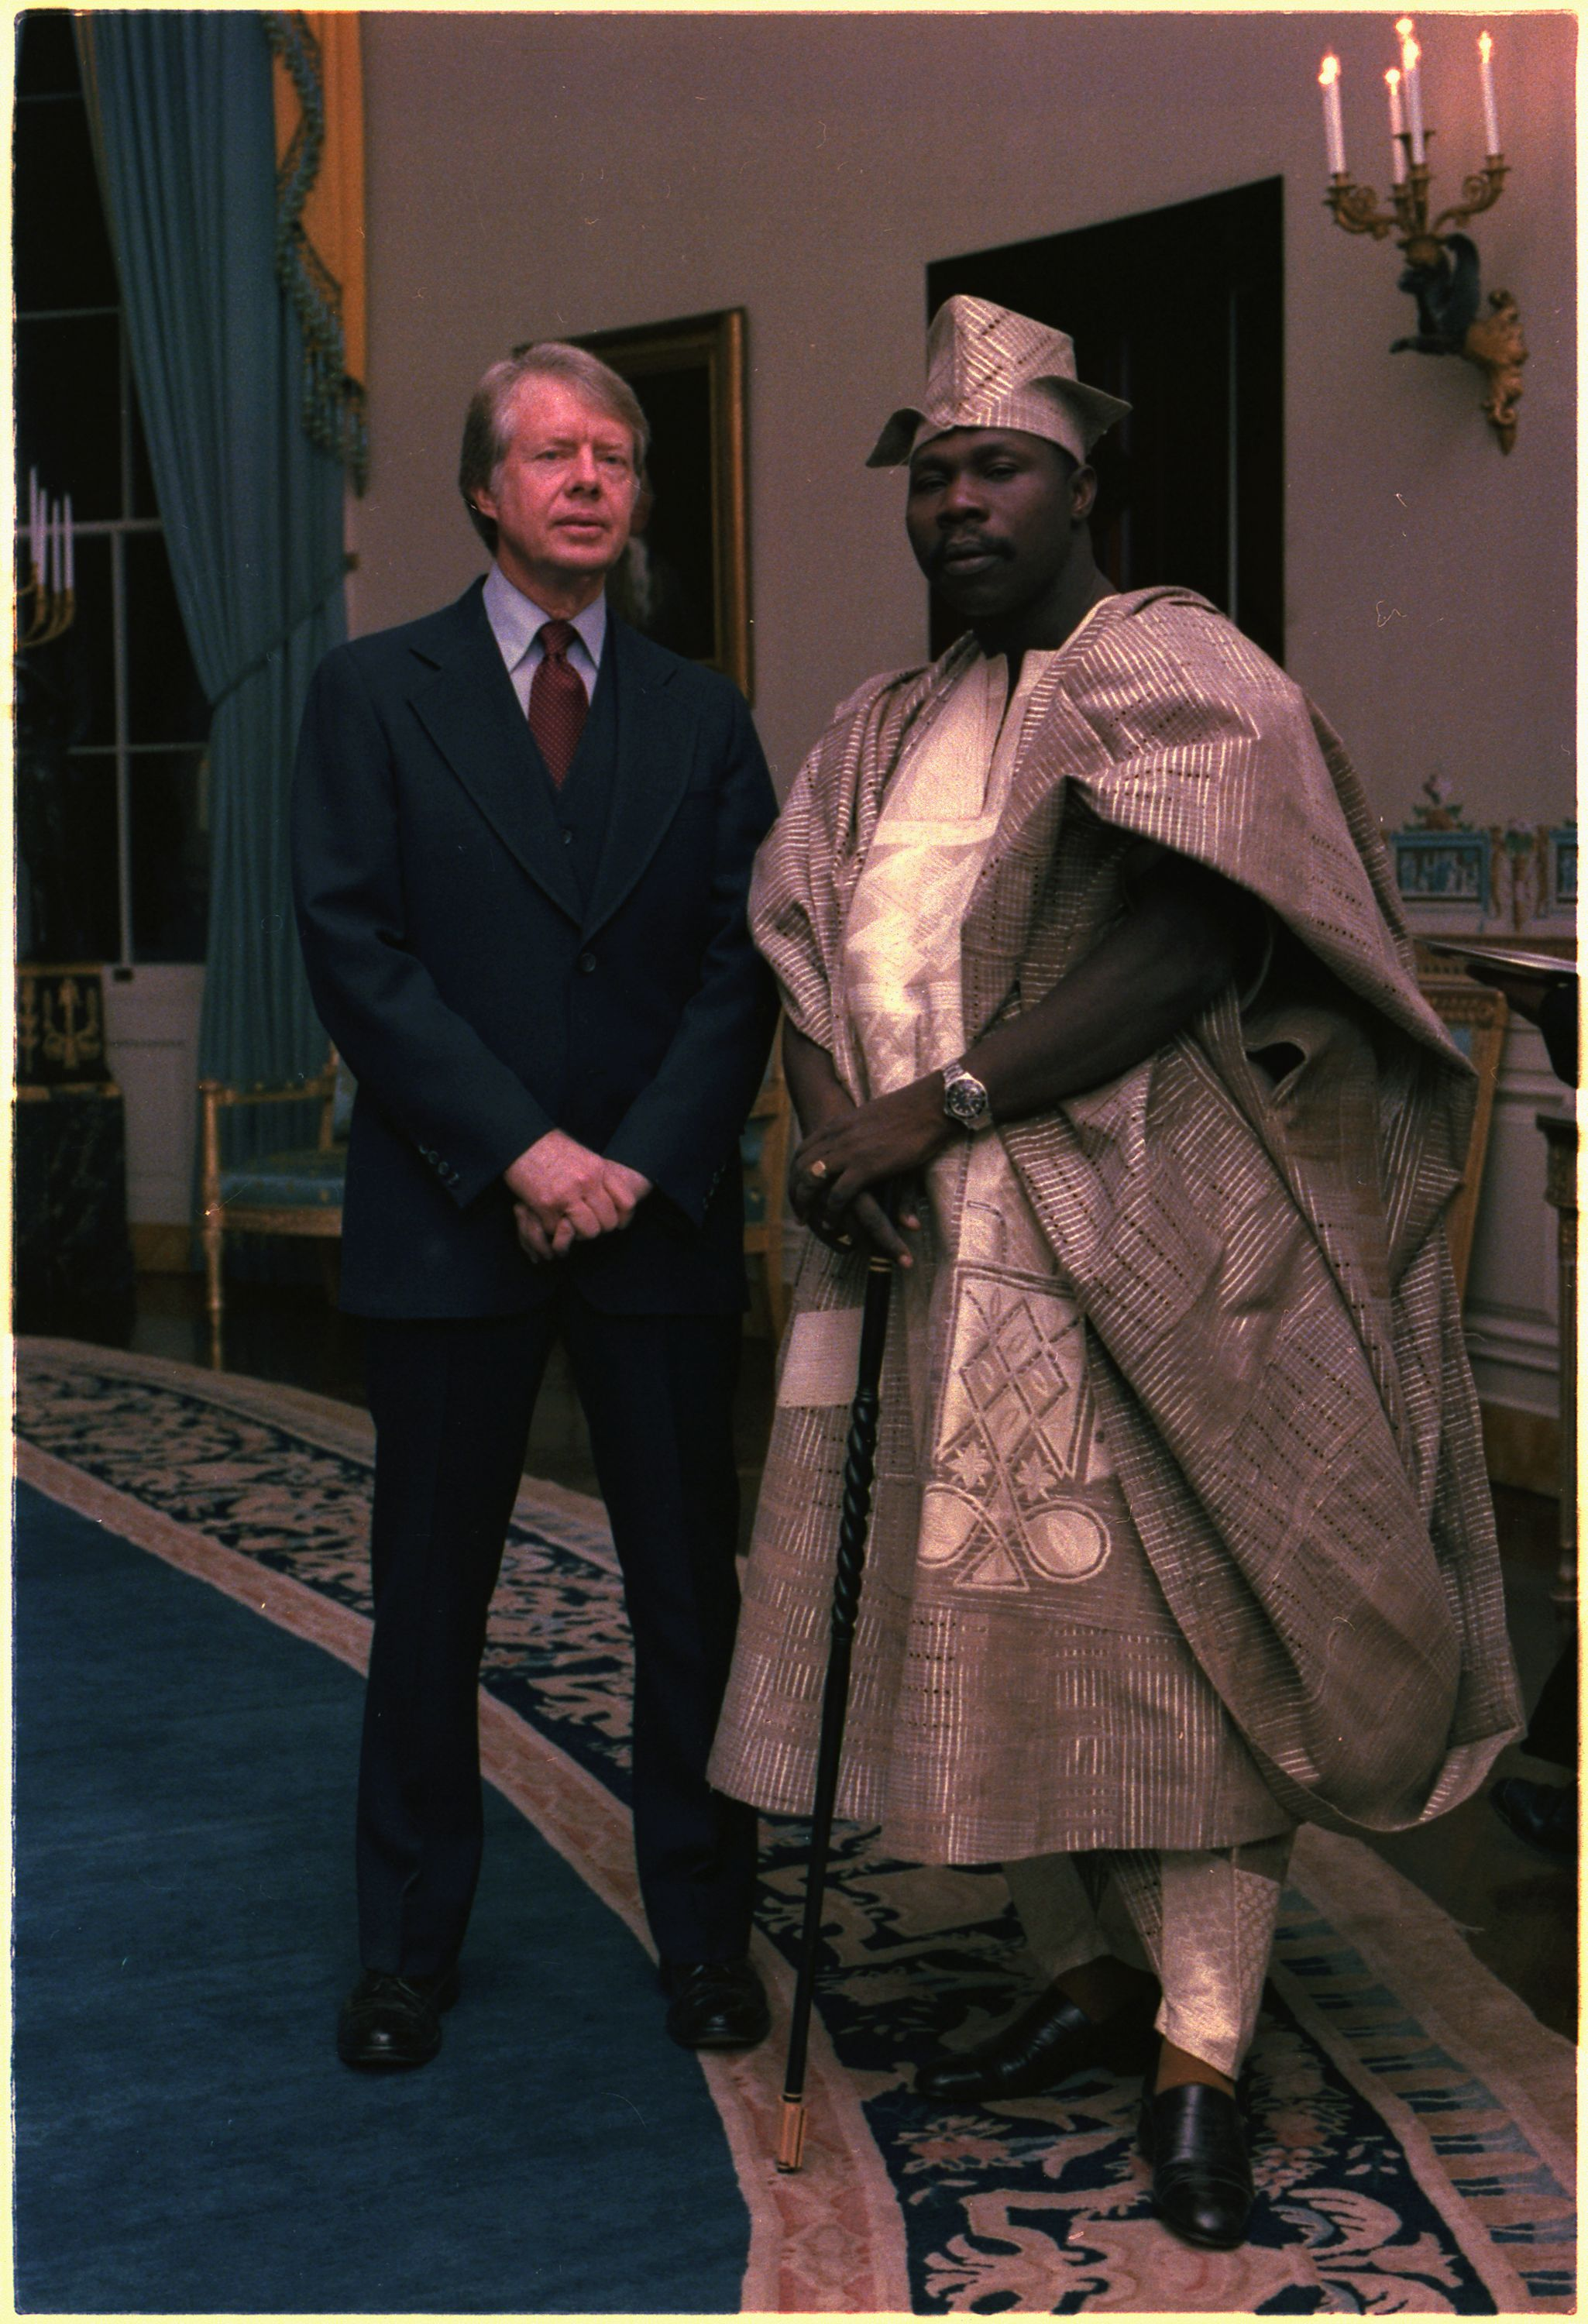 Fashion Throwback: Another Epic Photo Of Obasanjo And His SWAG